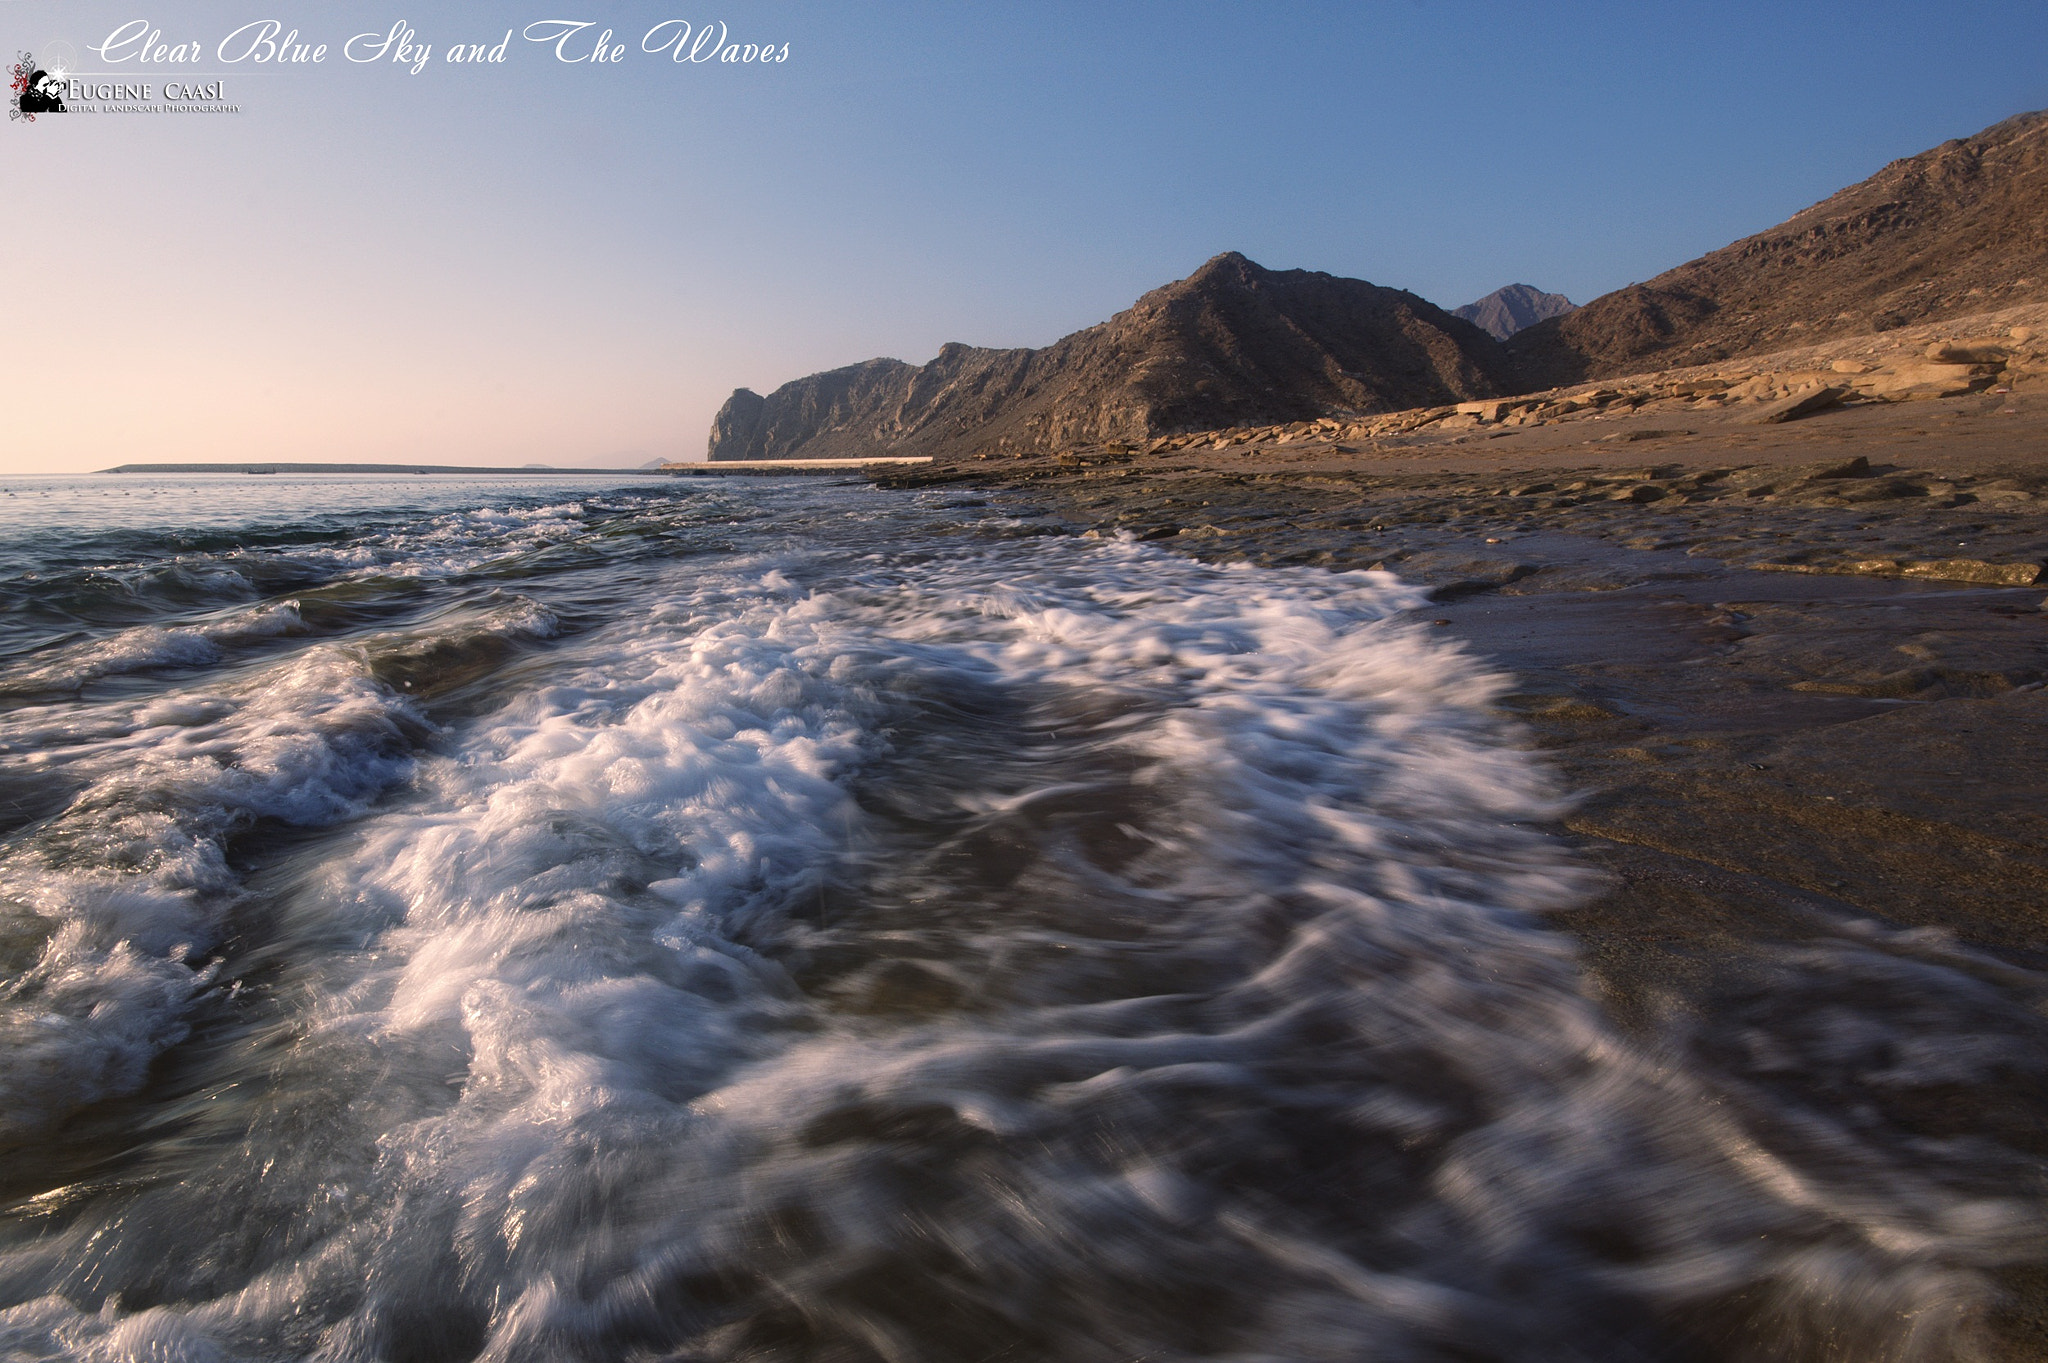 Photograph CLEAR BLUE SKY AND THE WAVES by Eugene Caasi on 500px